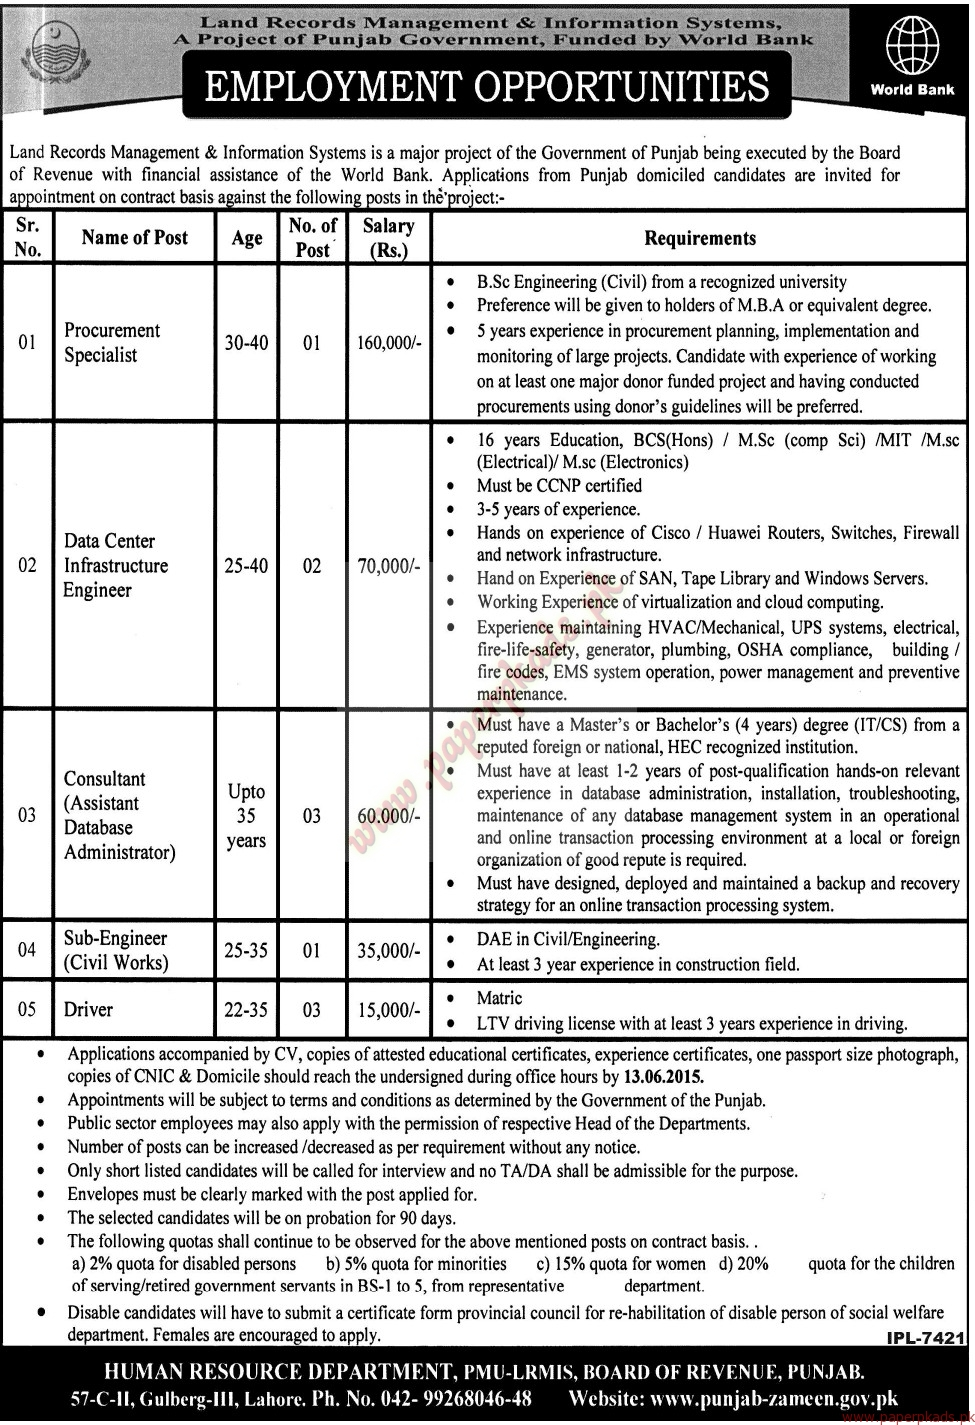 Land Records Management & Information Systems Jobs - Jang Jobs ads 04 June 2015